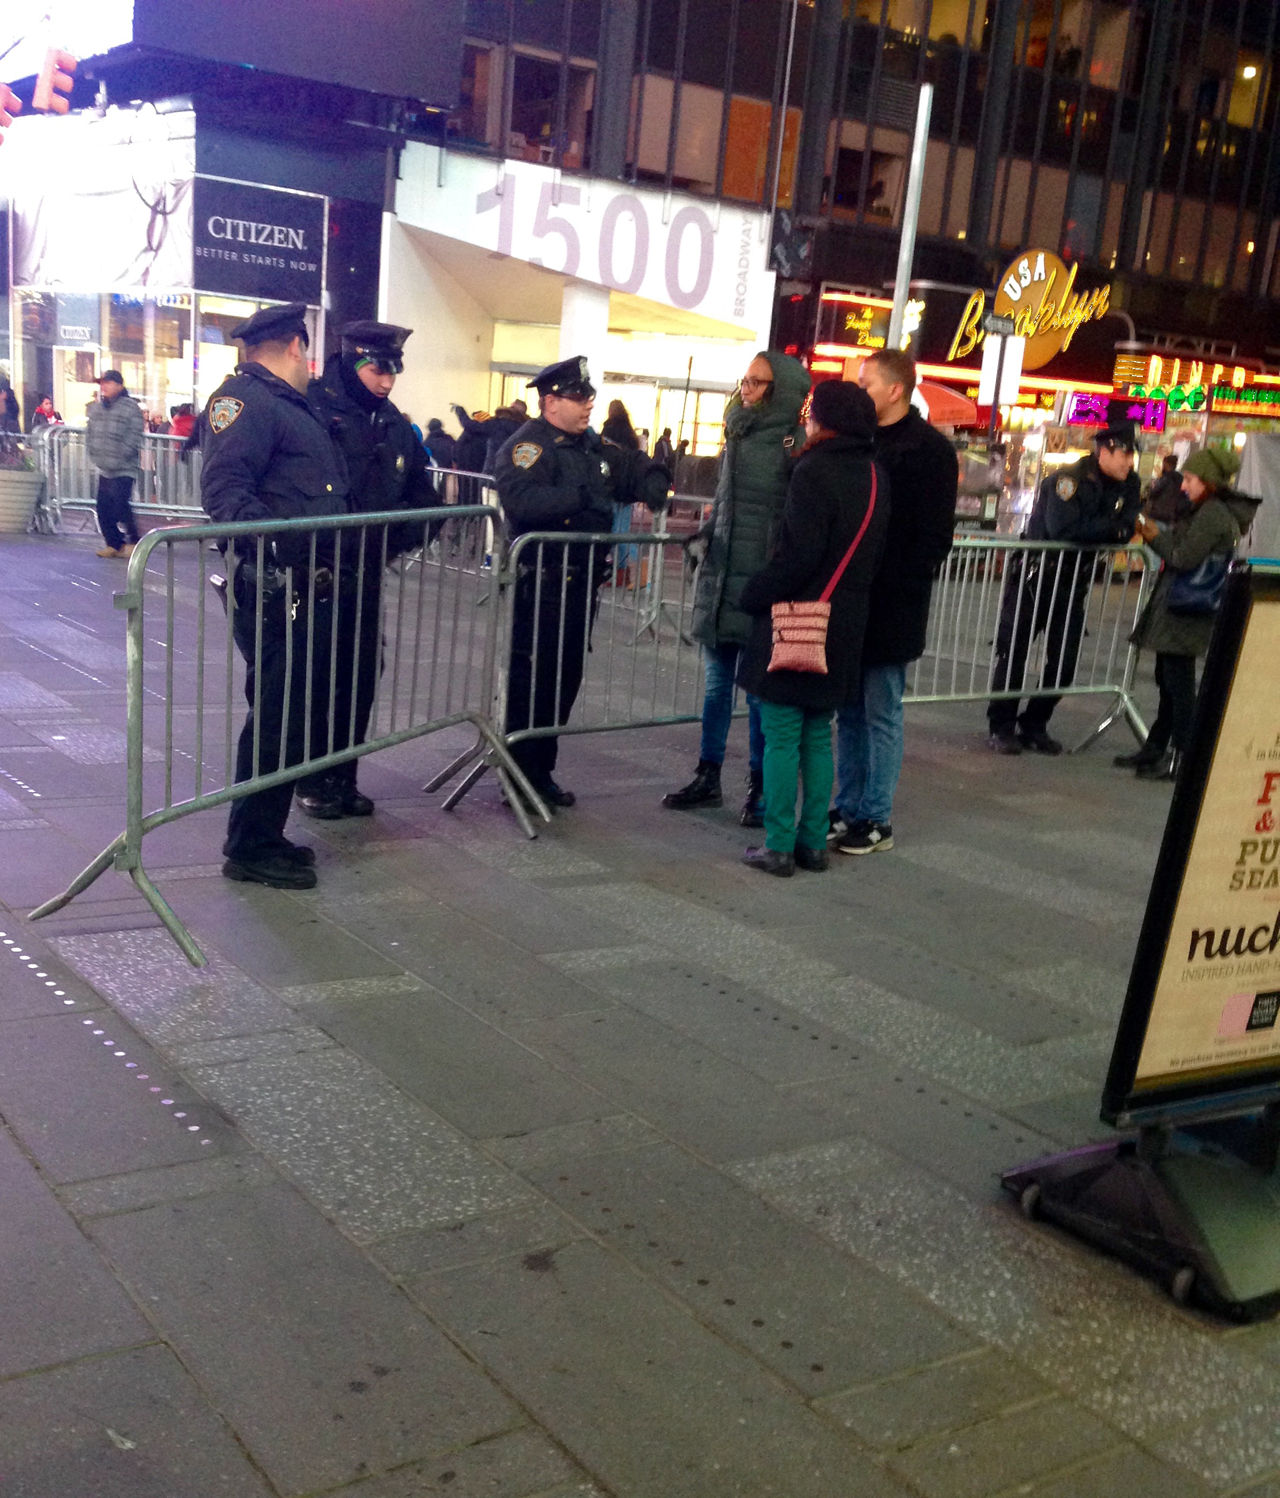 Staging A Performance With The NYPD